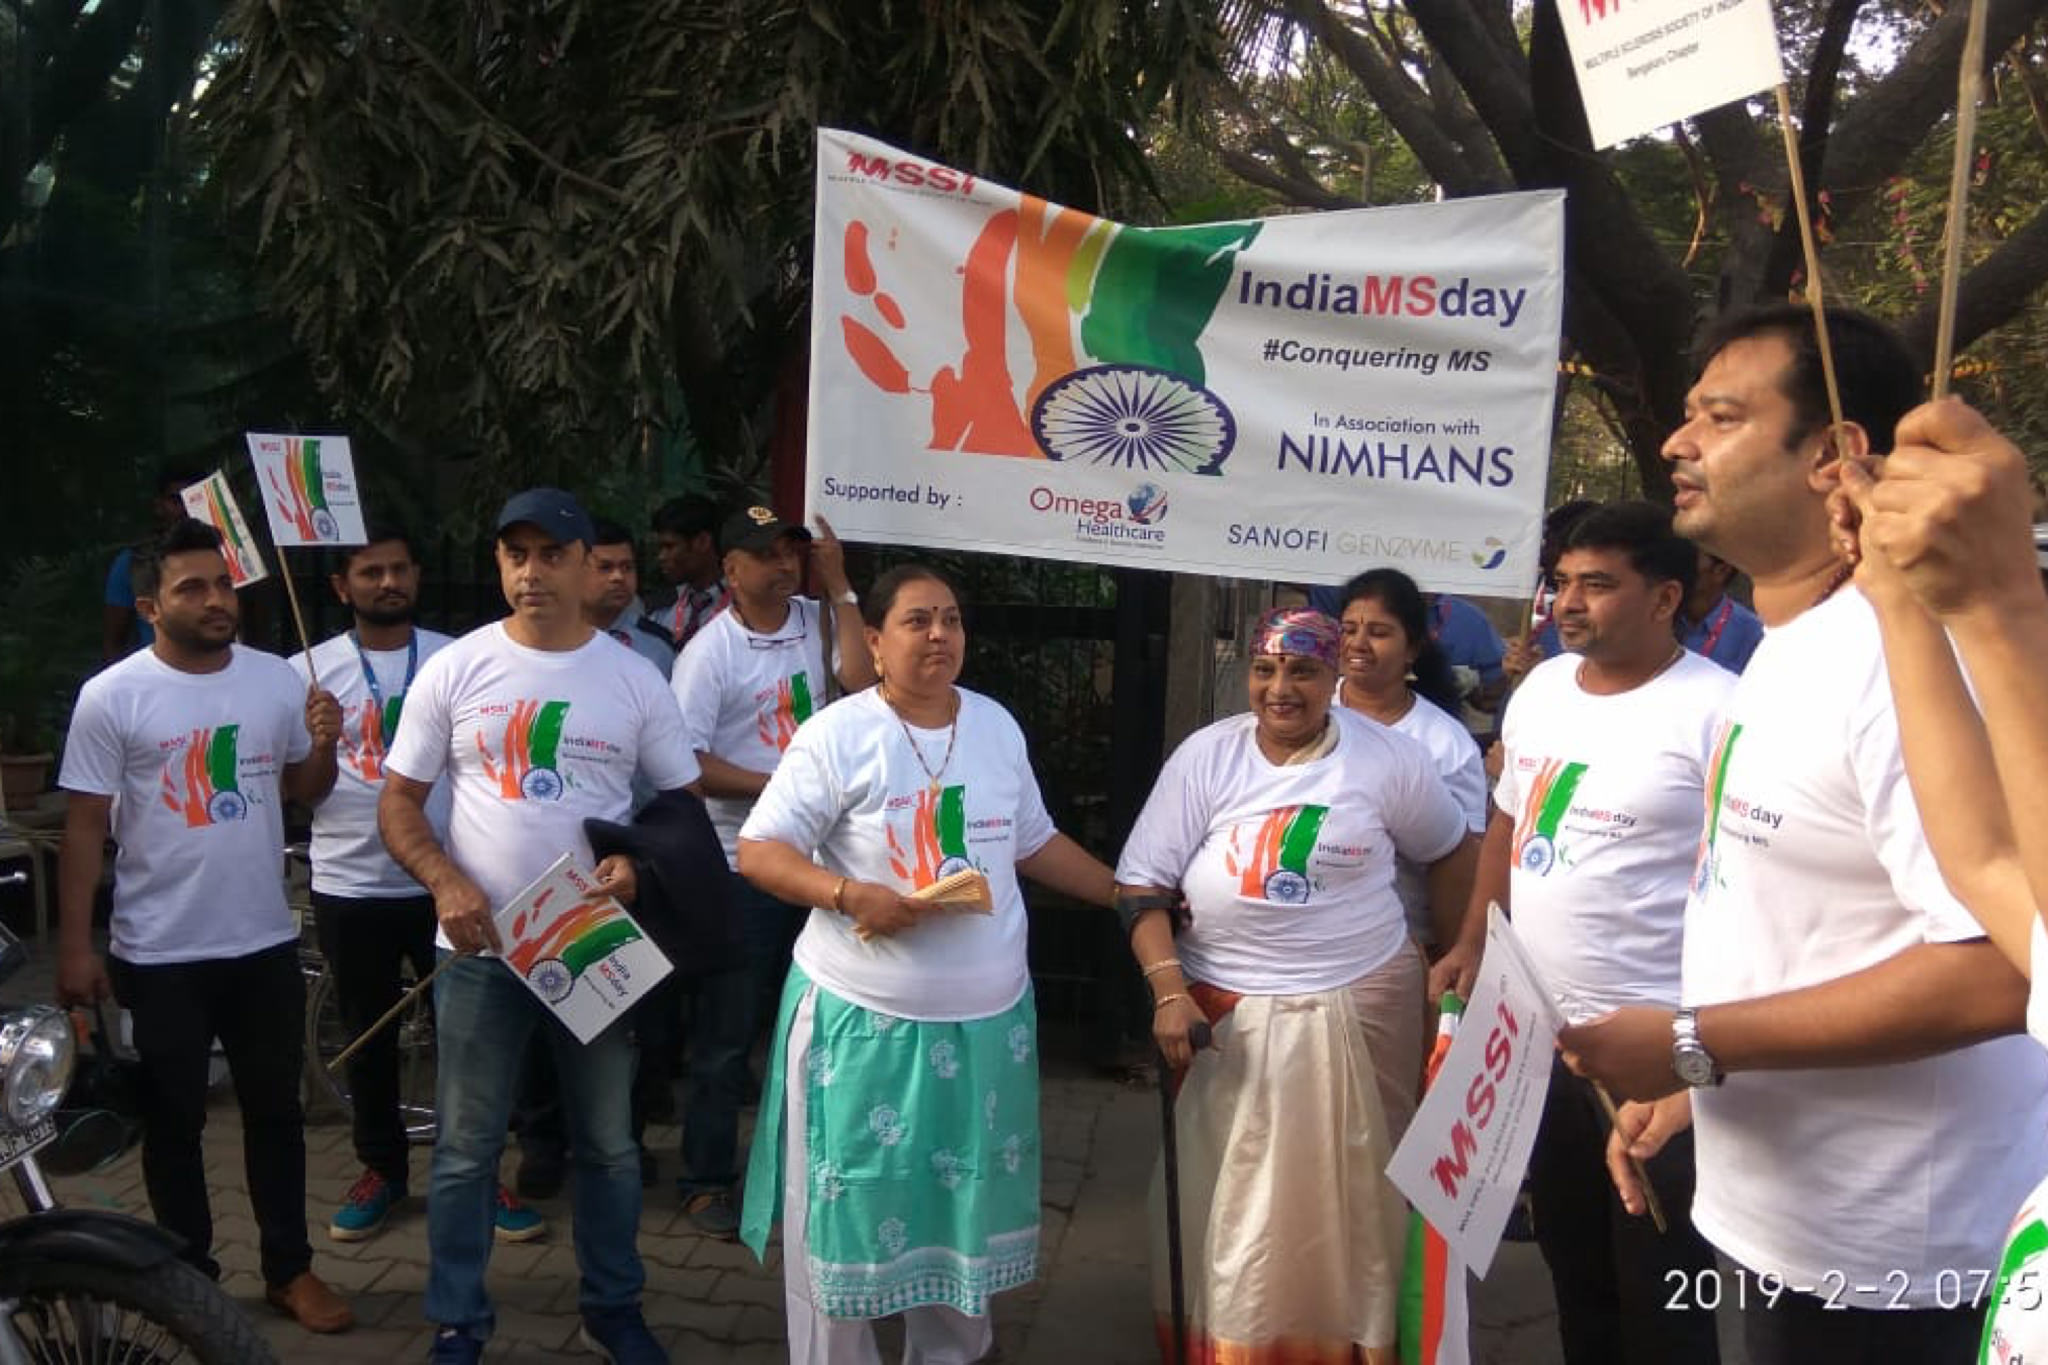 India MS Day 2019 – Bengaluru